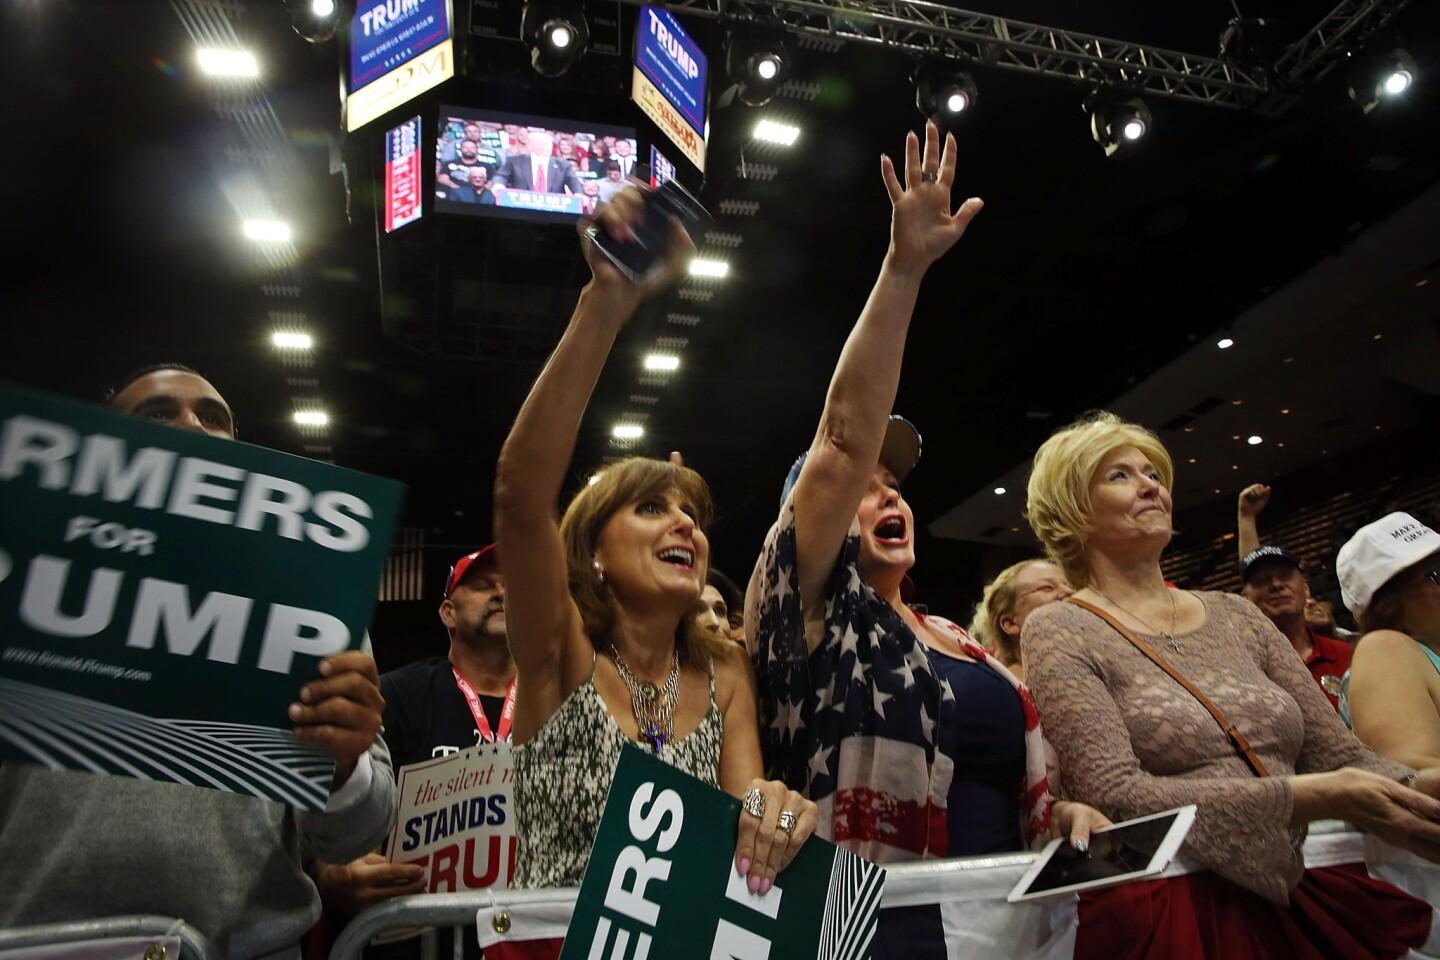 Women cheer as presumptive Republican presidential candidate Donald Trump speaks at a rally in Fresno on Friday.